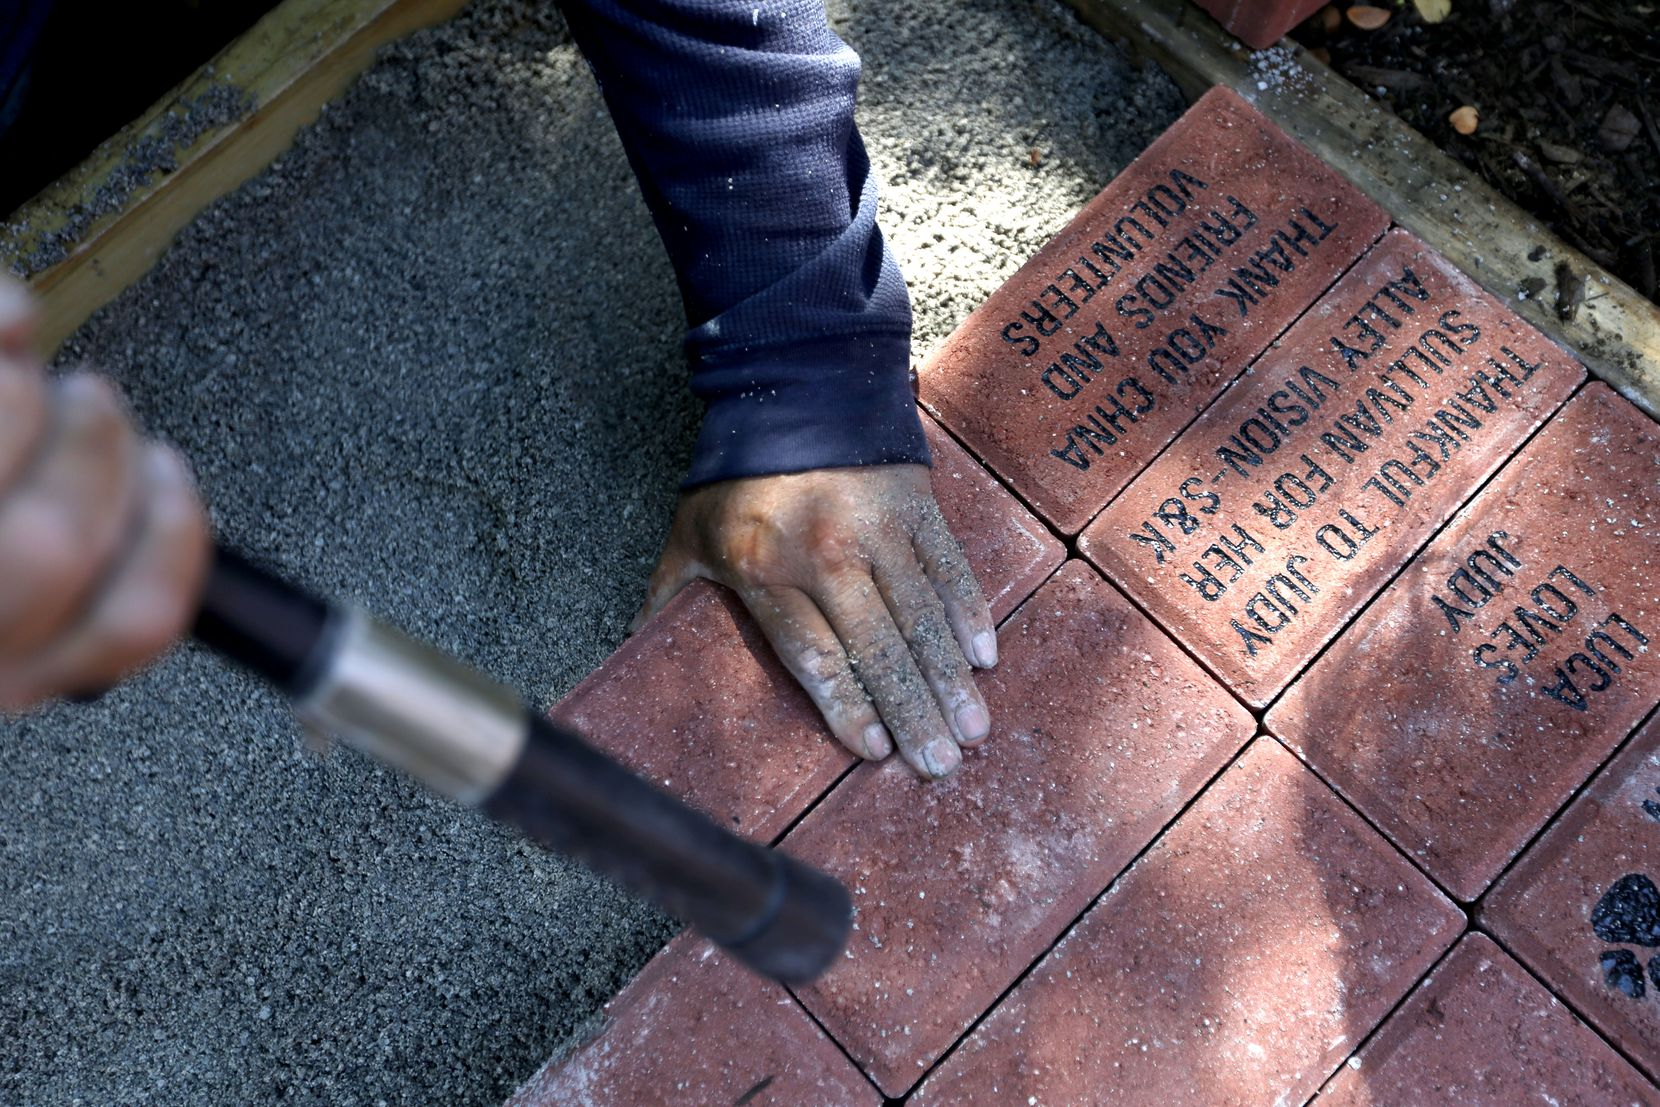 Alex Lira works to install commemorative engraved bricks that were sold to raise funds for the project.